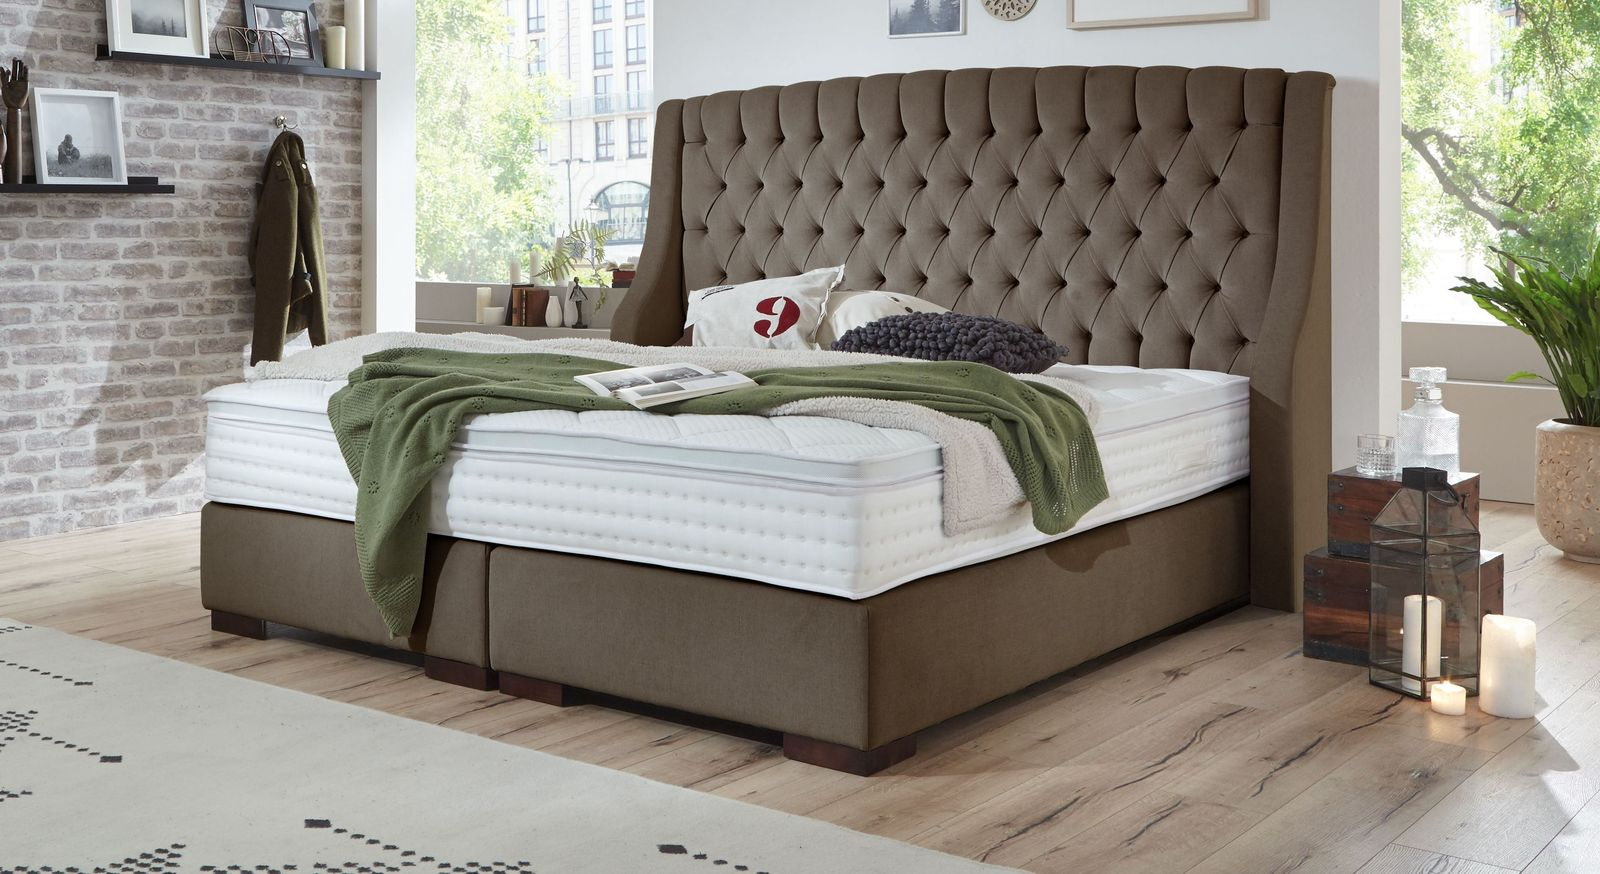 Boxspringbett Bridgeport aus moccafarbenem Velours-Webstoff